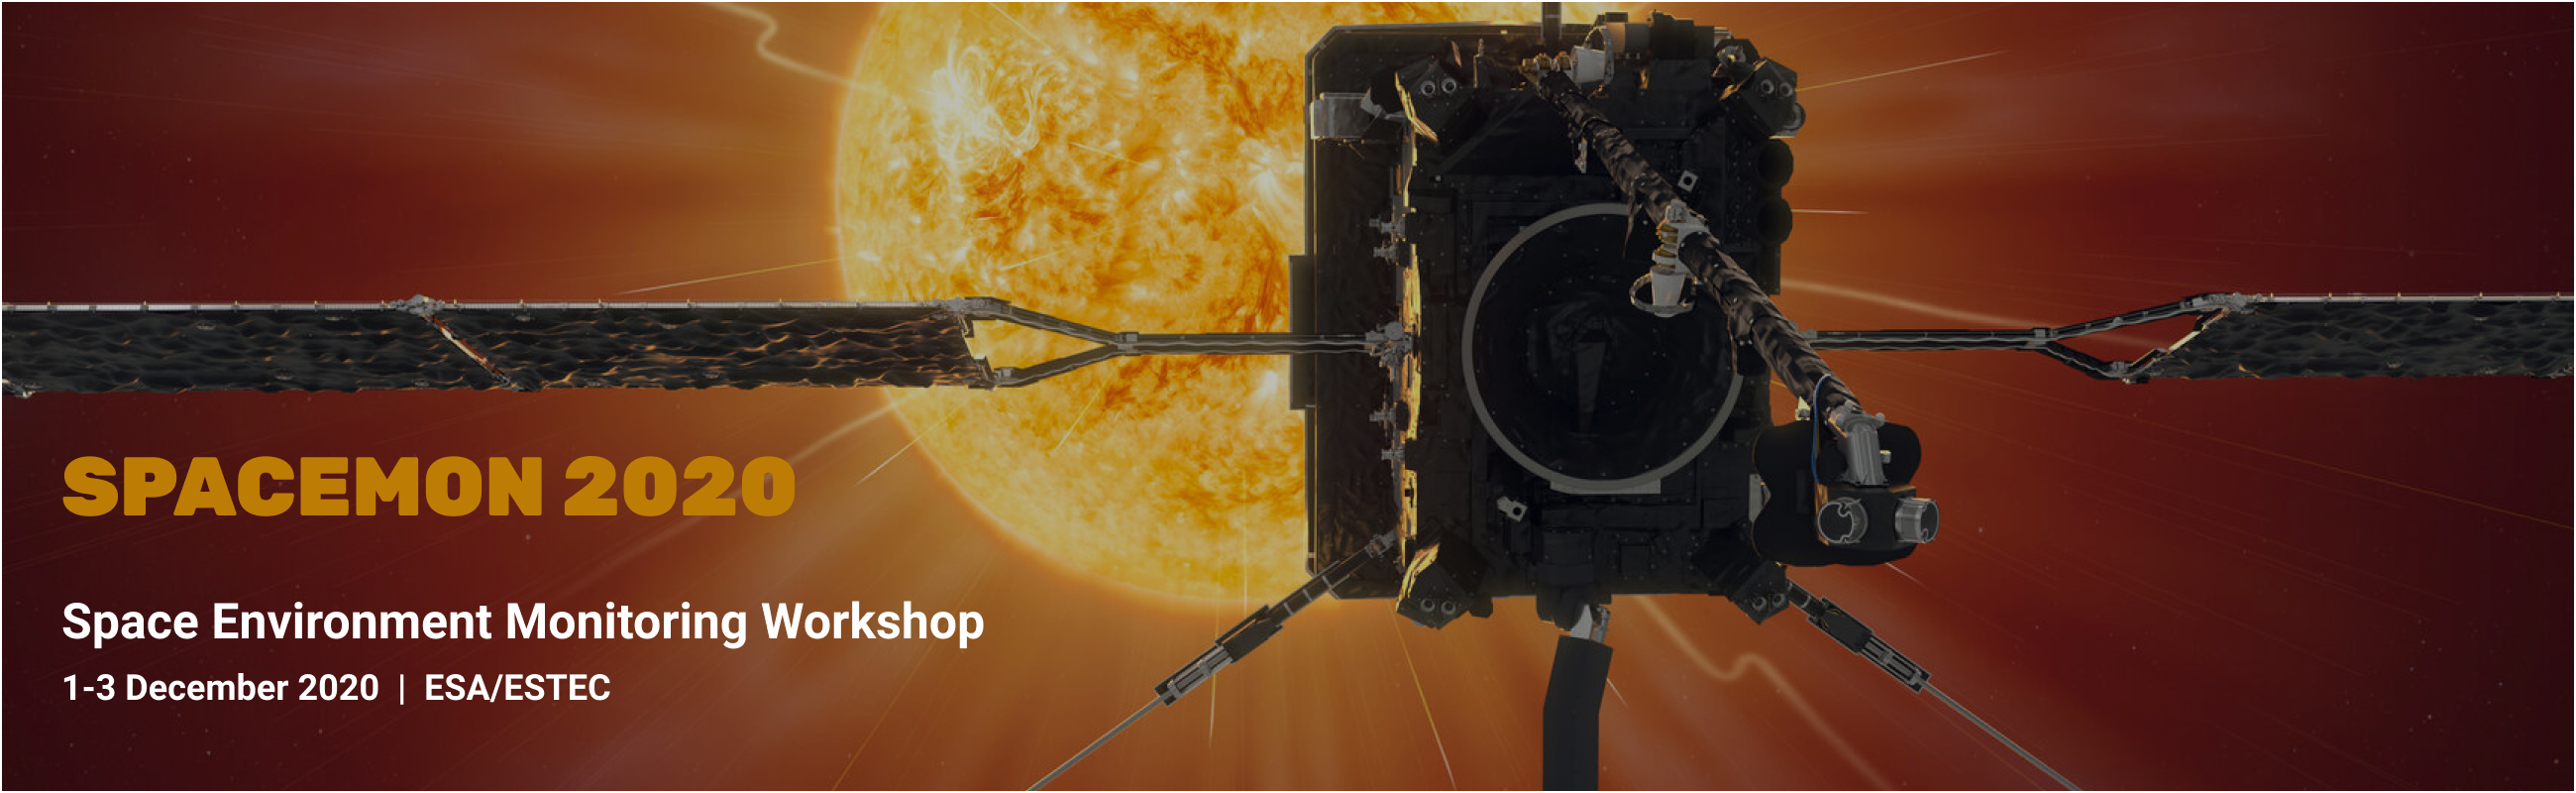 SPACEMON: Space Environment Monitoring Workshop 2020